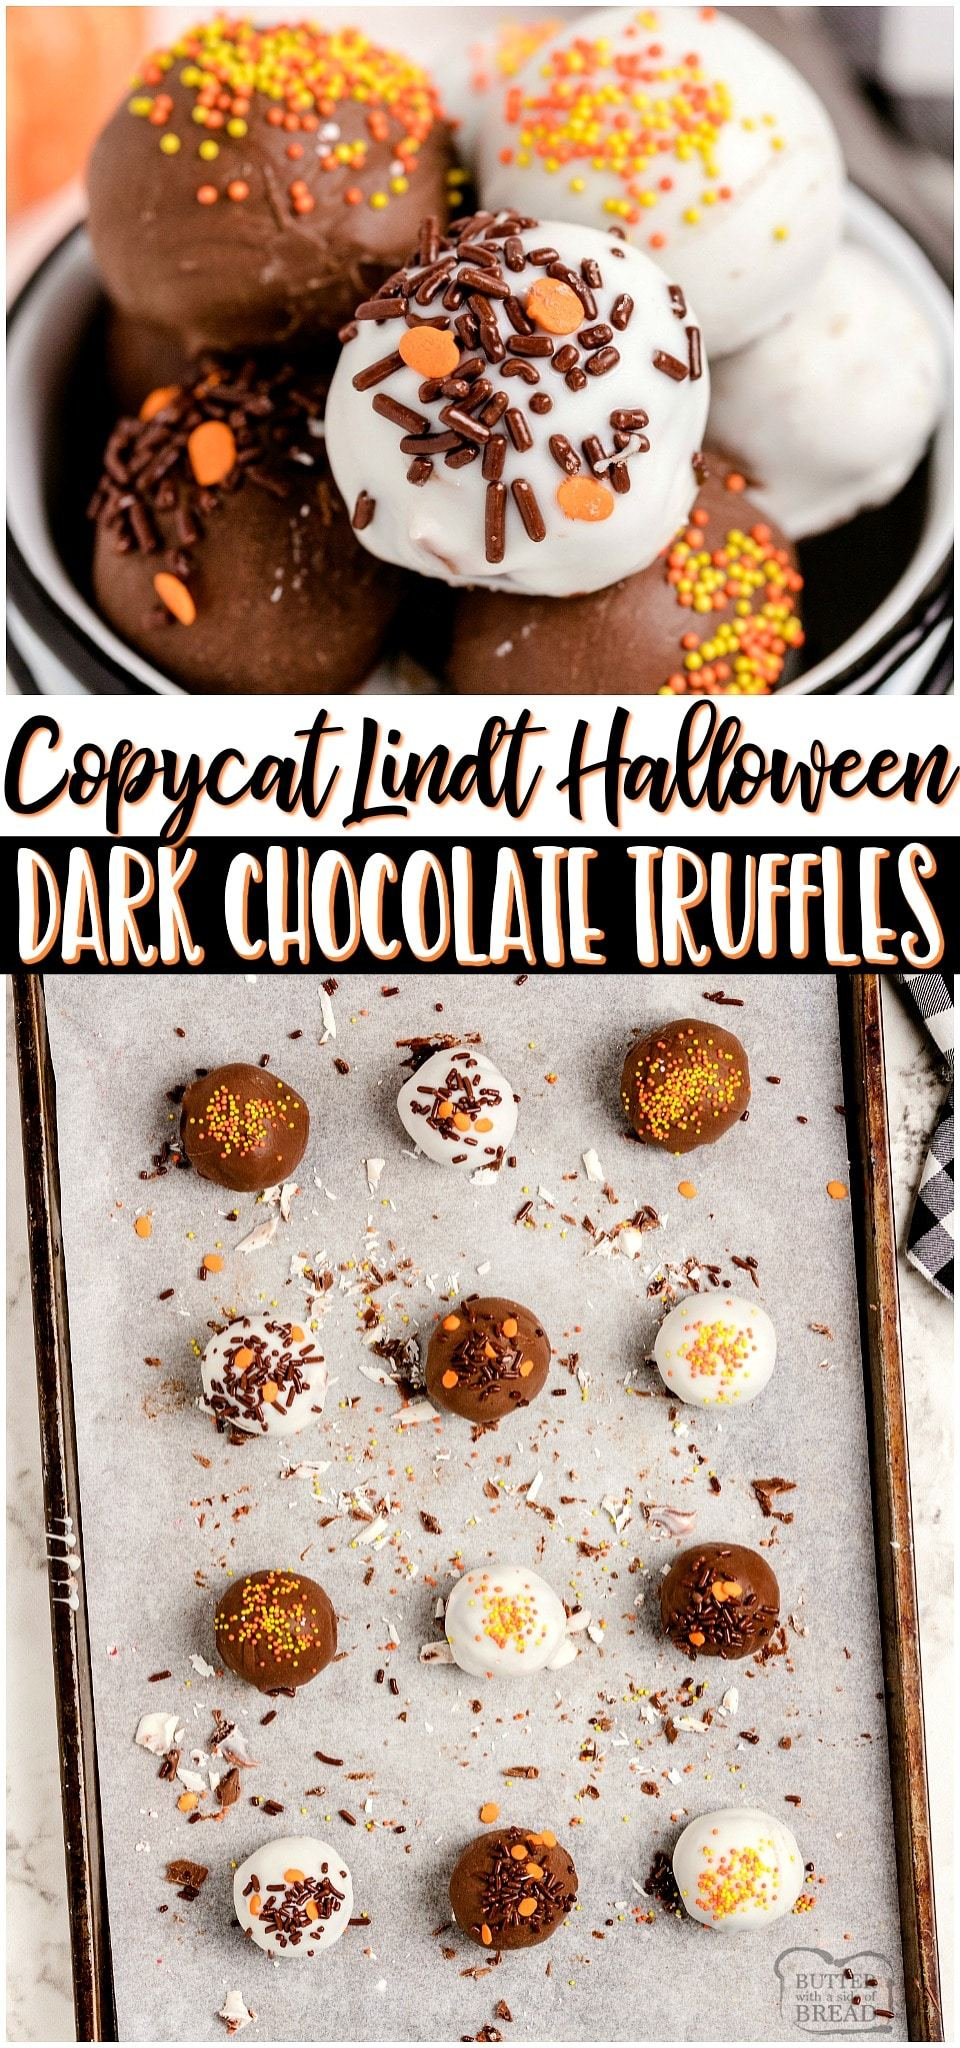 Homemade Halloween Lindt Dark Chocolate Truffles made with just 5 ingredients and SO amazing! Chocolate chips, heavy cream and butter combine for a rich & smooth luscious chocolate truffle filling that rivals Lindt's! Chocolate lovers must try these festive Halloween Truffles! #Lindt #chocolate #truffles #candy #darkchocolate #Halloween #easyrecipe from BUTTER WITH A SIDE OF BREAD